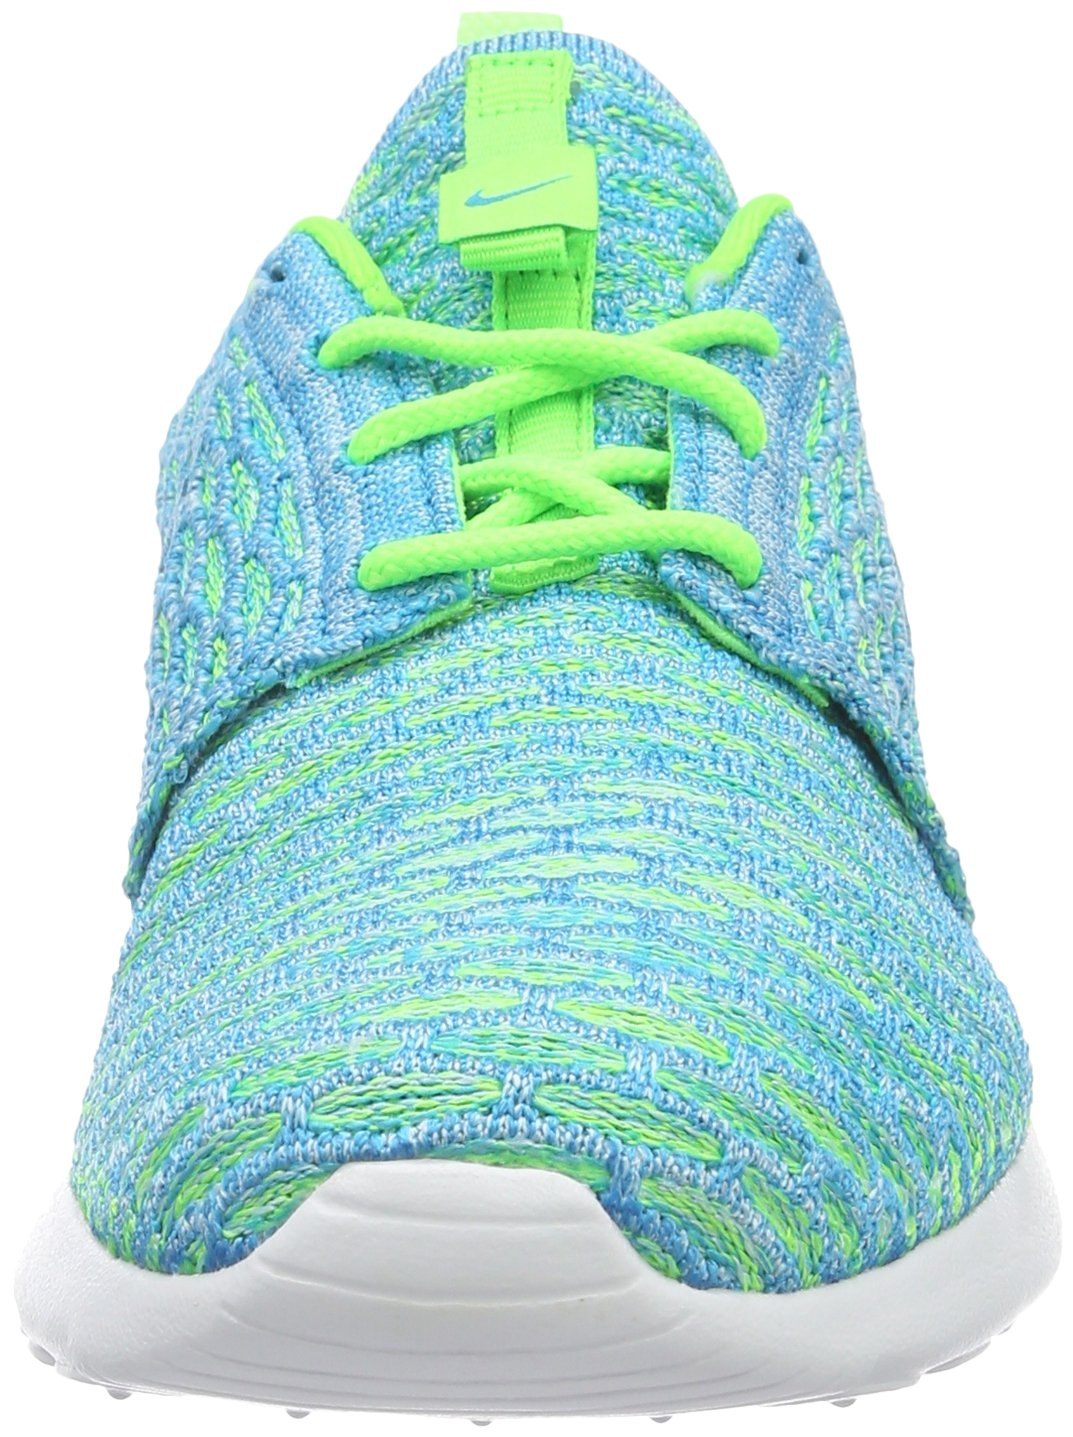 NIKE Womens Roshe One Flyknit Flyknit Colorblock Running US|Green Shoes B00964HWO8 5.5 B(M) US|Green Running 2b5cb7